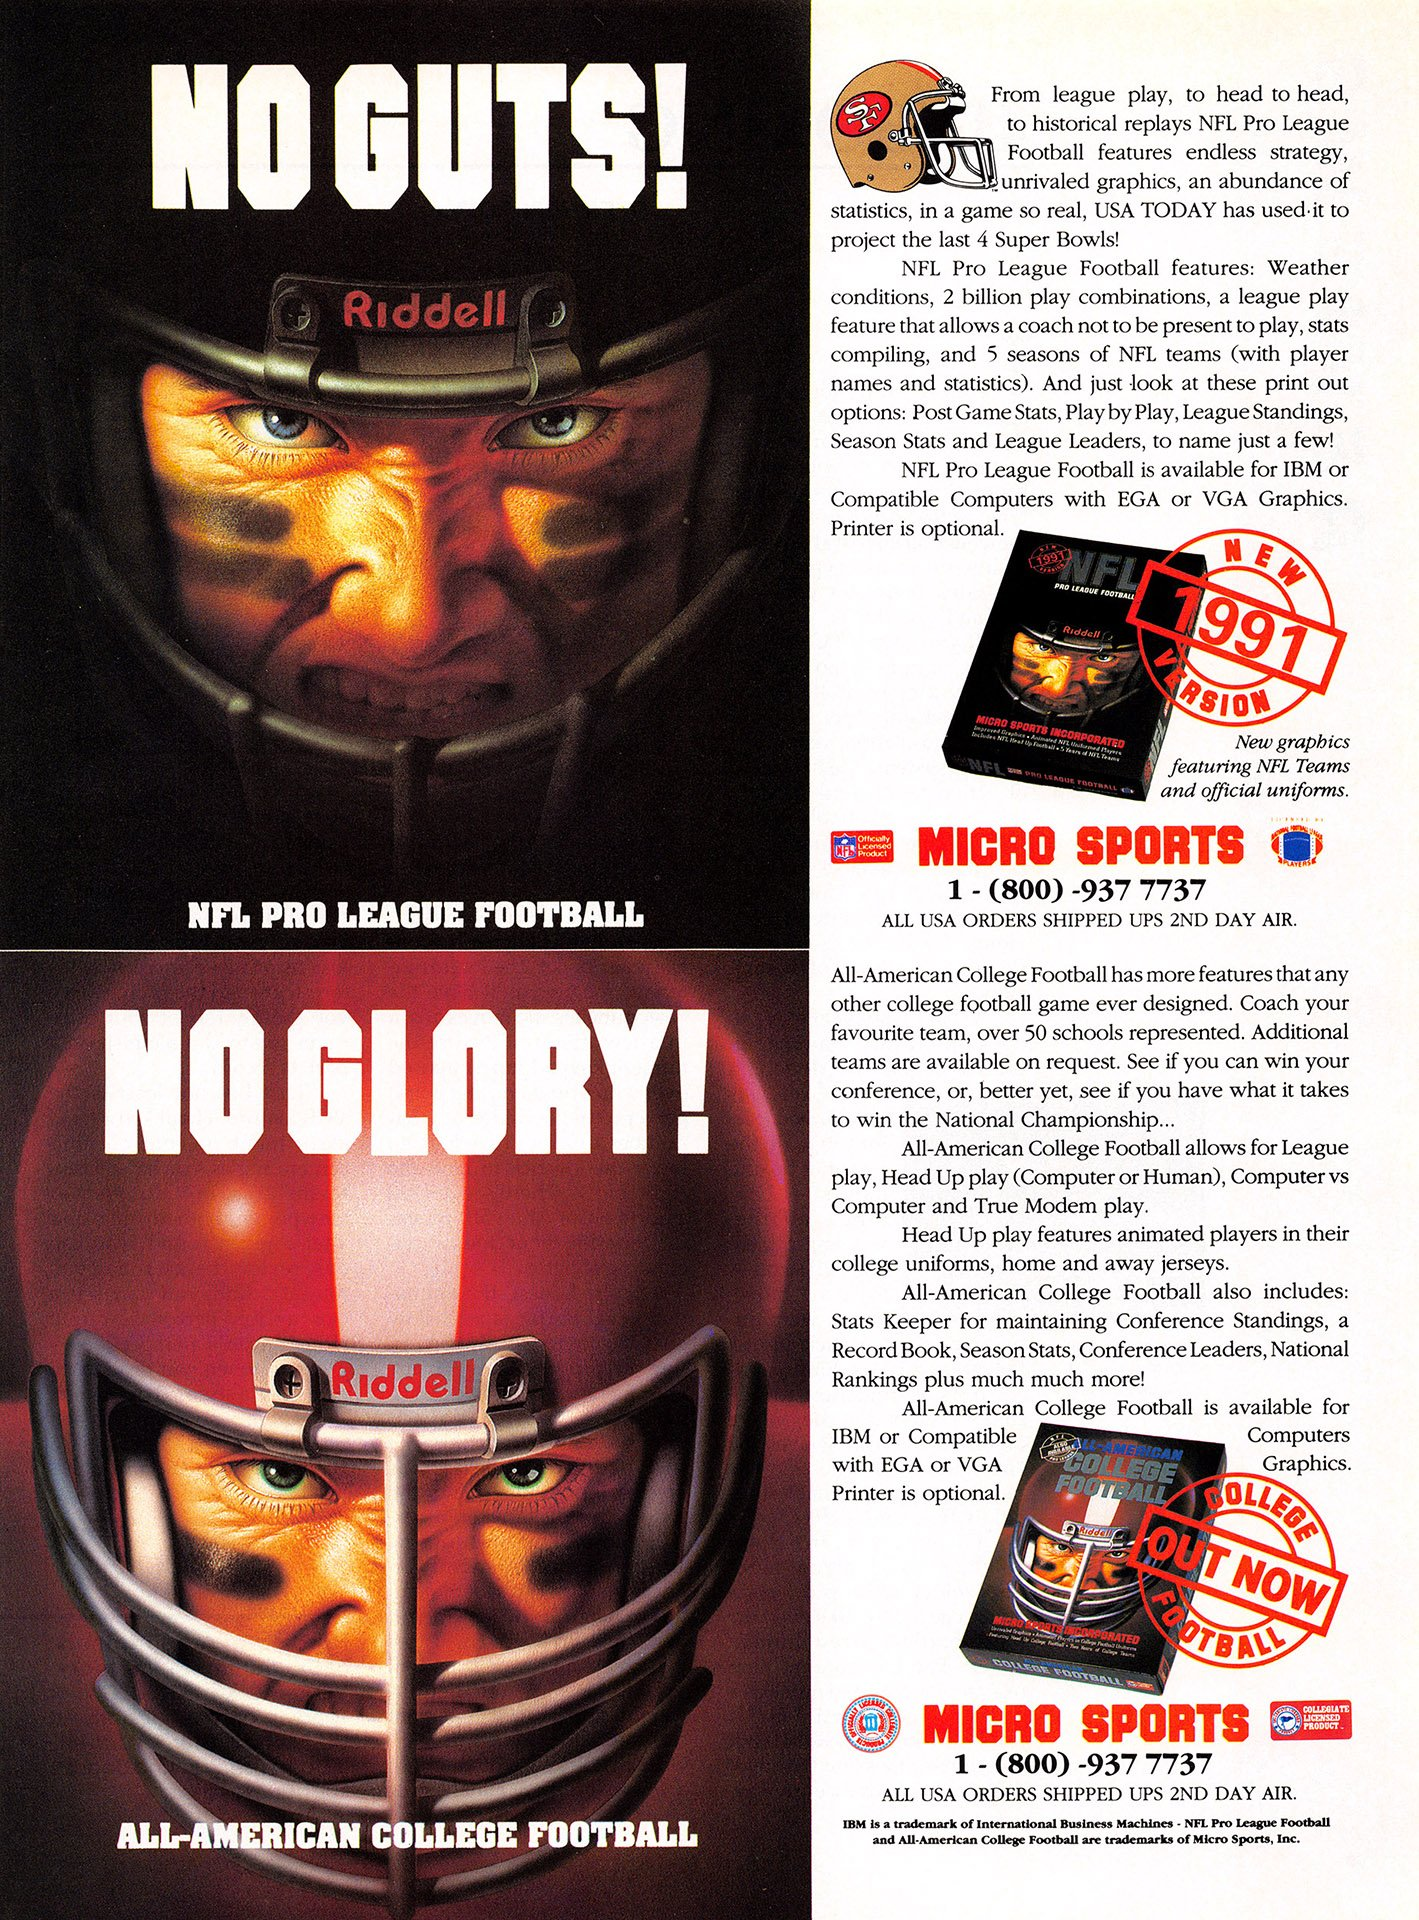 NFL Pro League Football (1991 version), All-American College Football